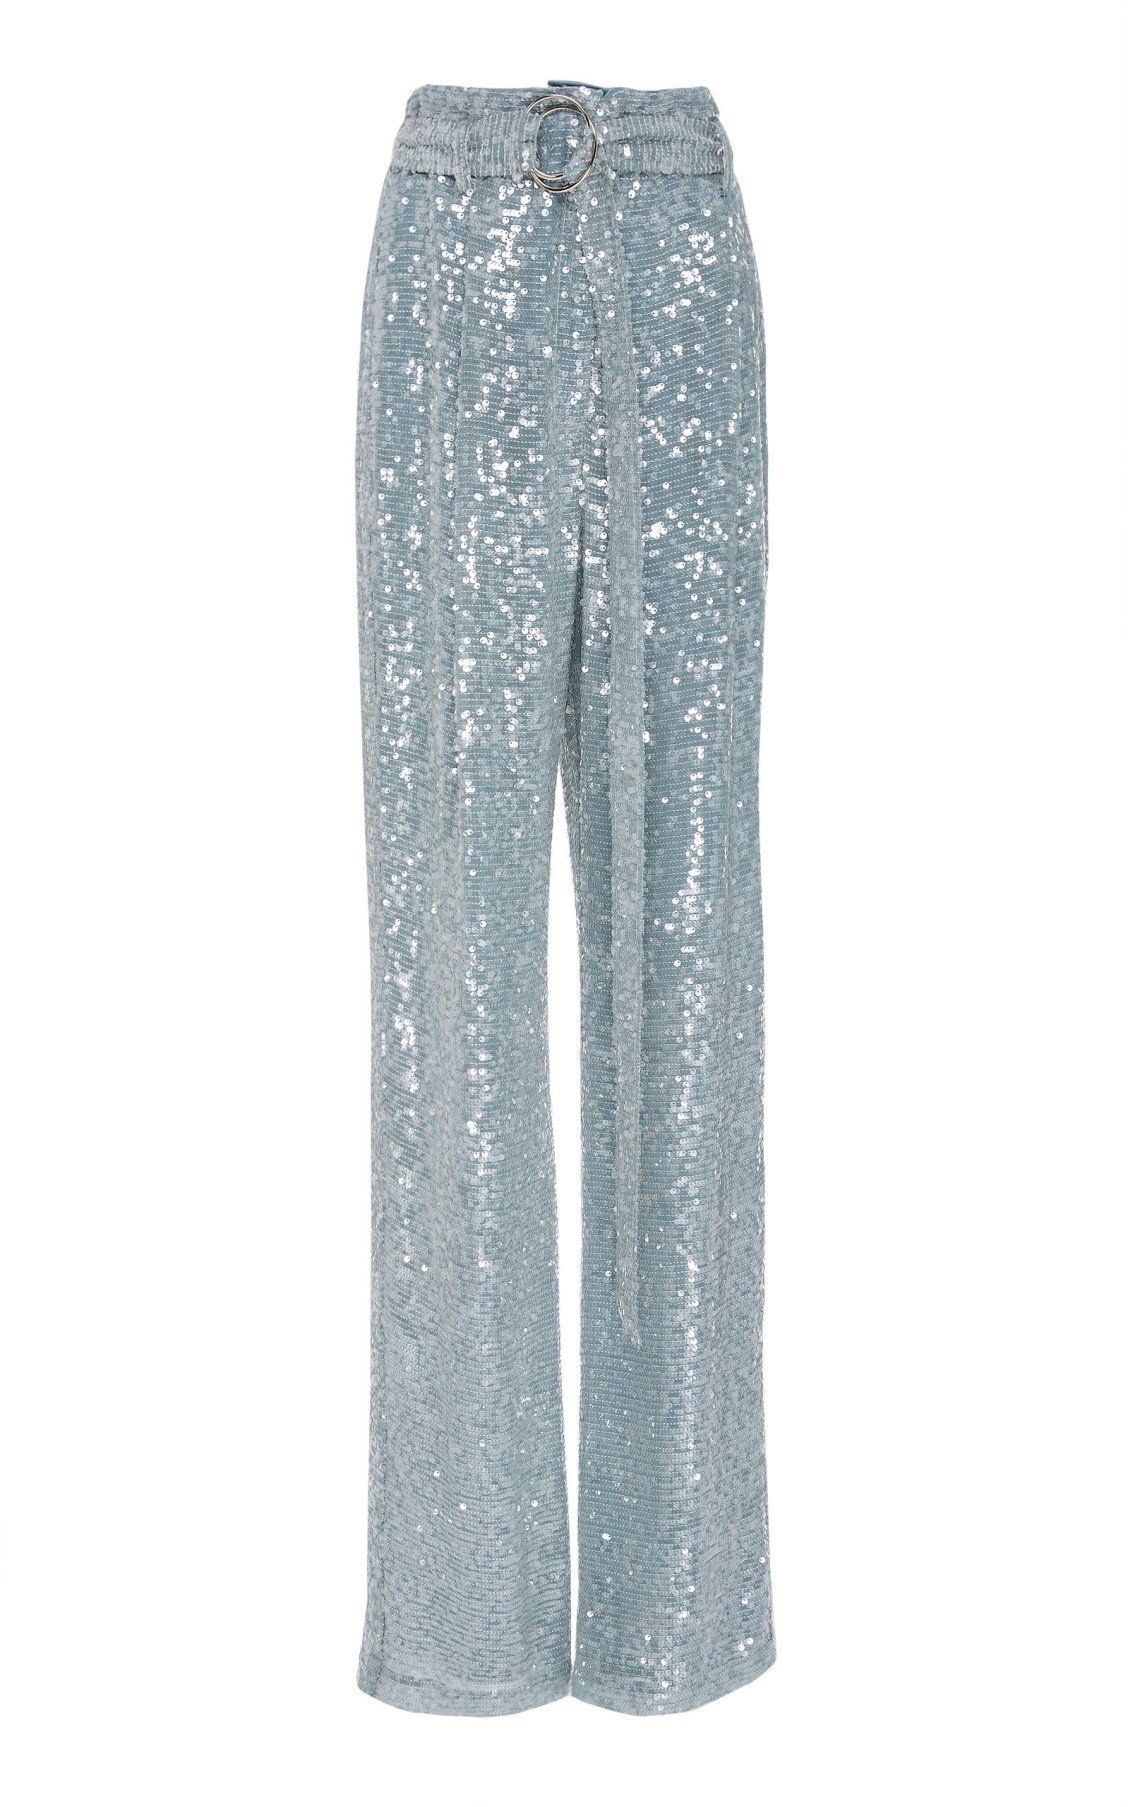 49531e4bffa2a High-Rise Belted Sequin Straight-Leg Pants by Sally LaPointe PF19 ...